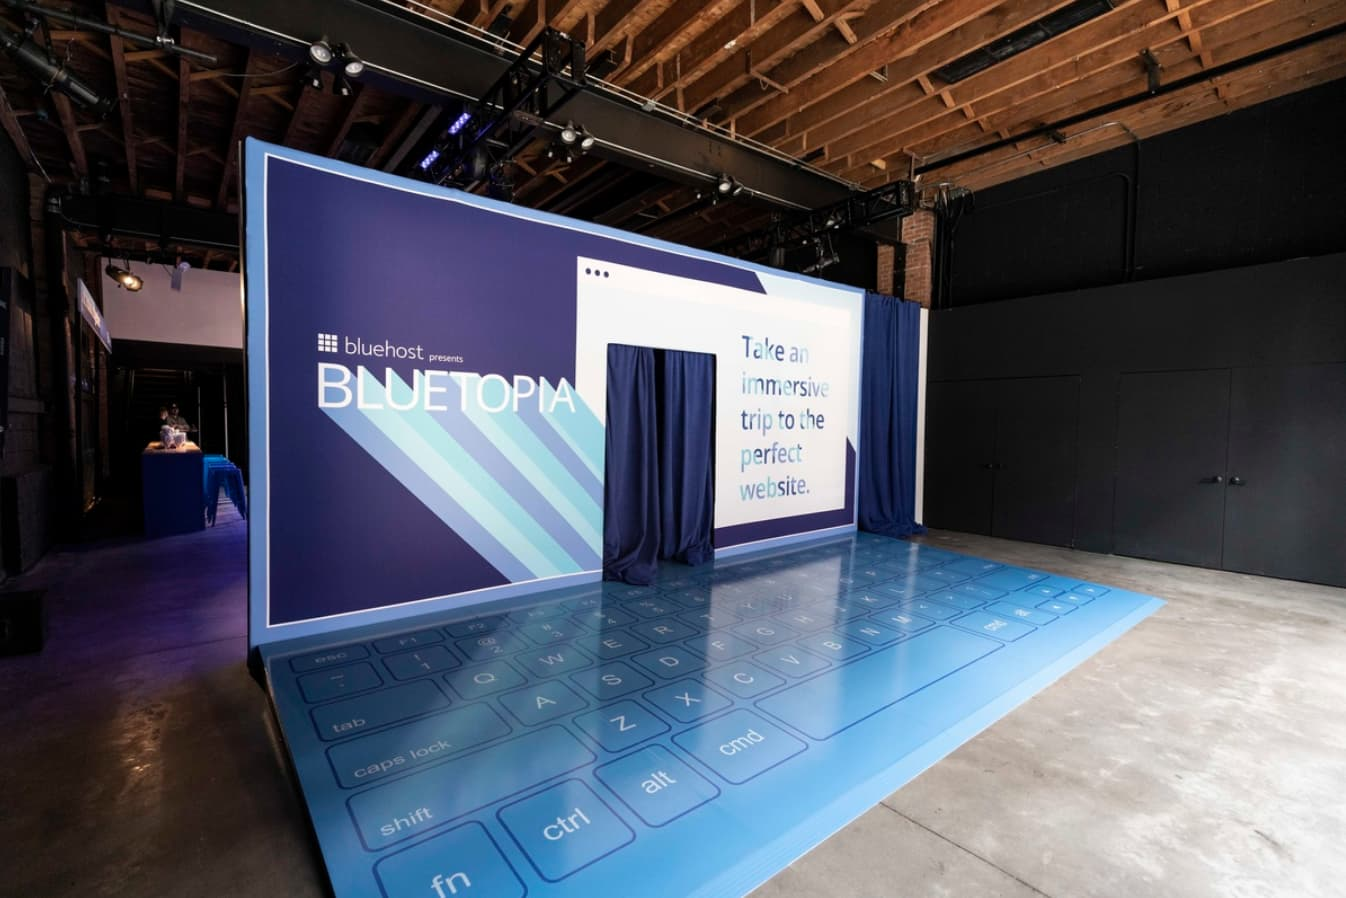 Bluehost 3-day Pop Up